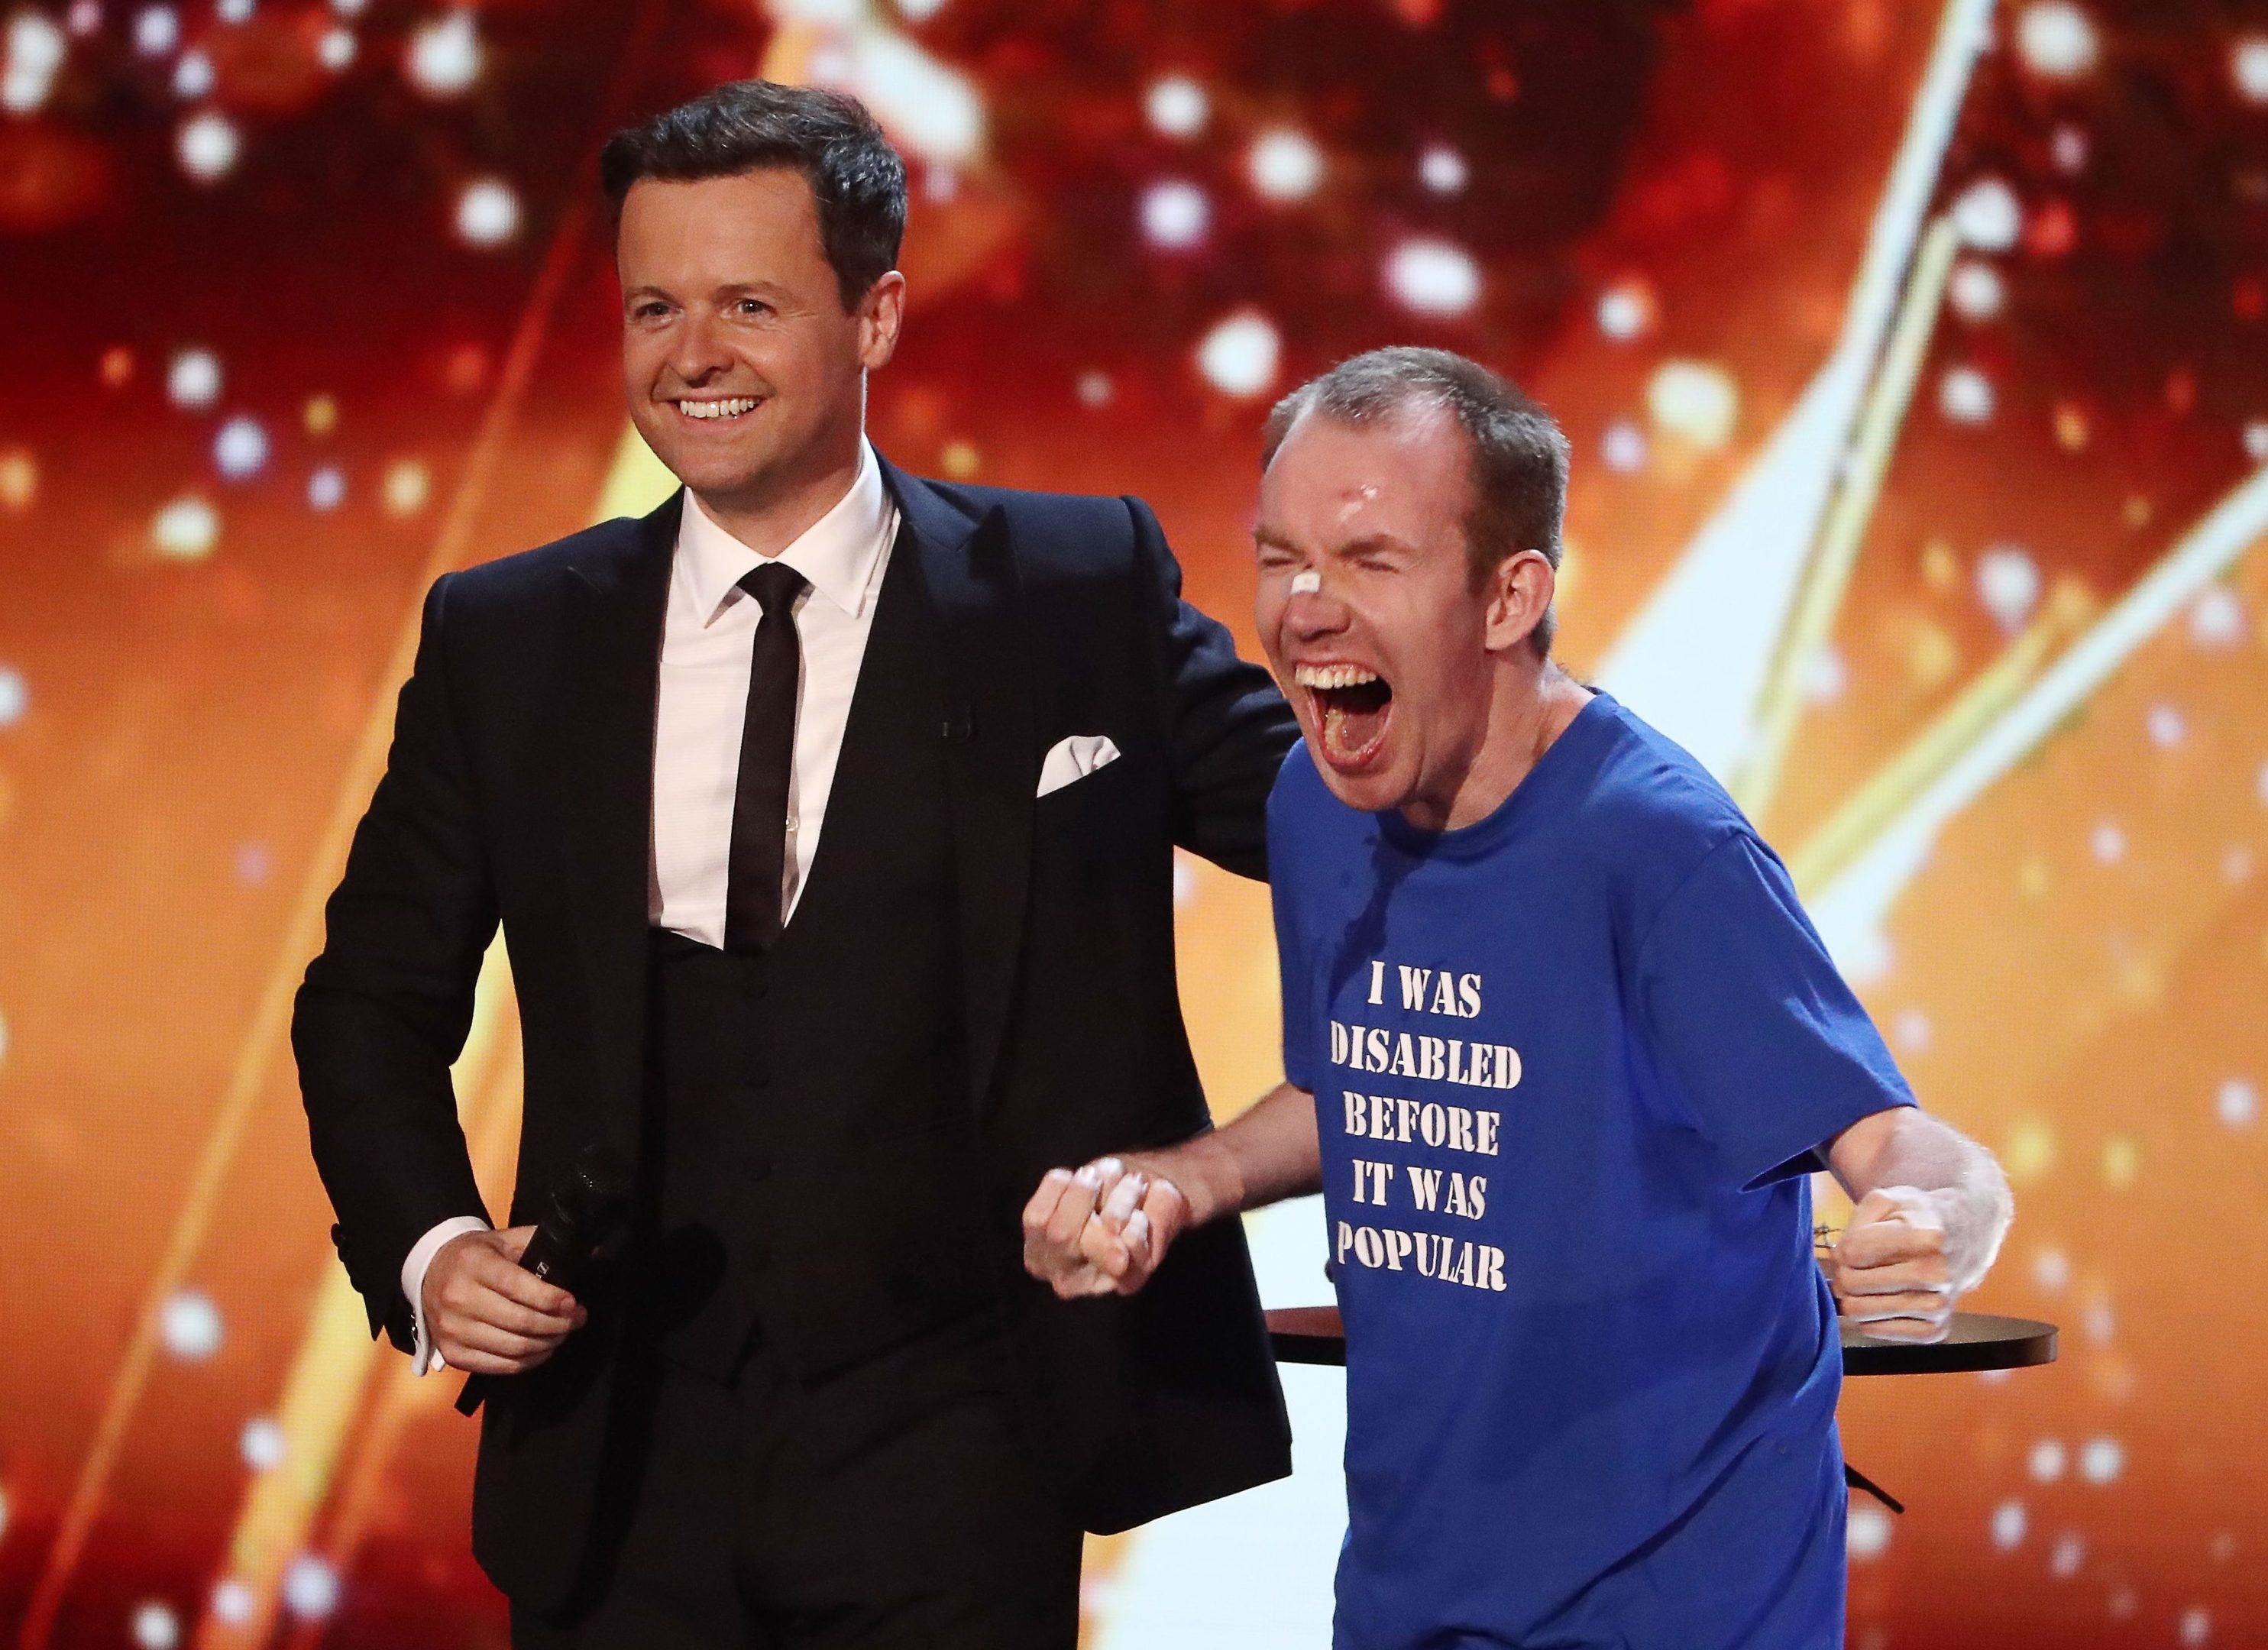 Lost Voice Guy with Britain's Got Talent host Declan Donnelly